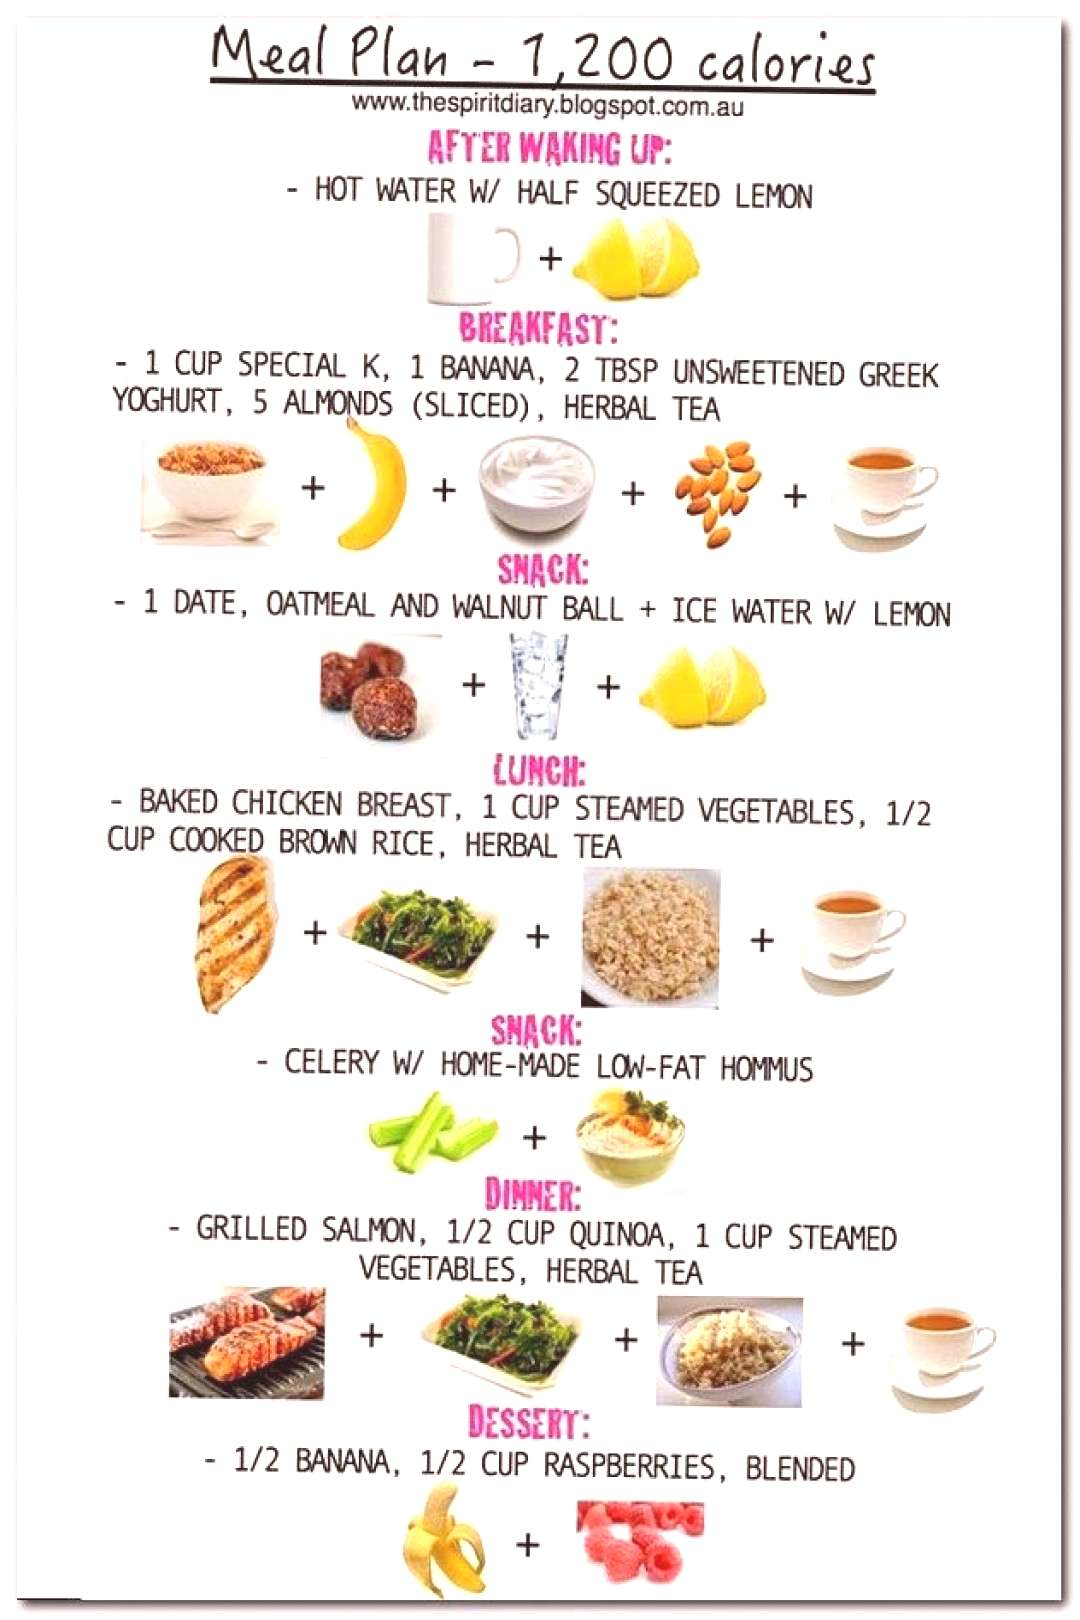 special k berries calories, the 7 day diet, excel spreadsheet for weight loss, s...